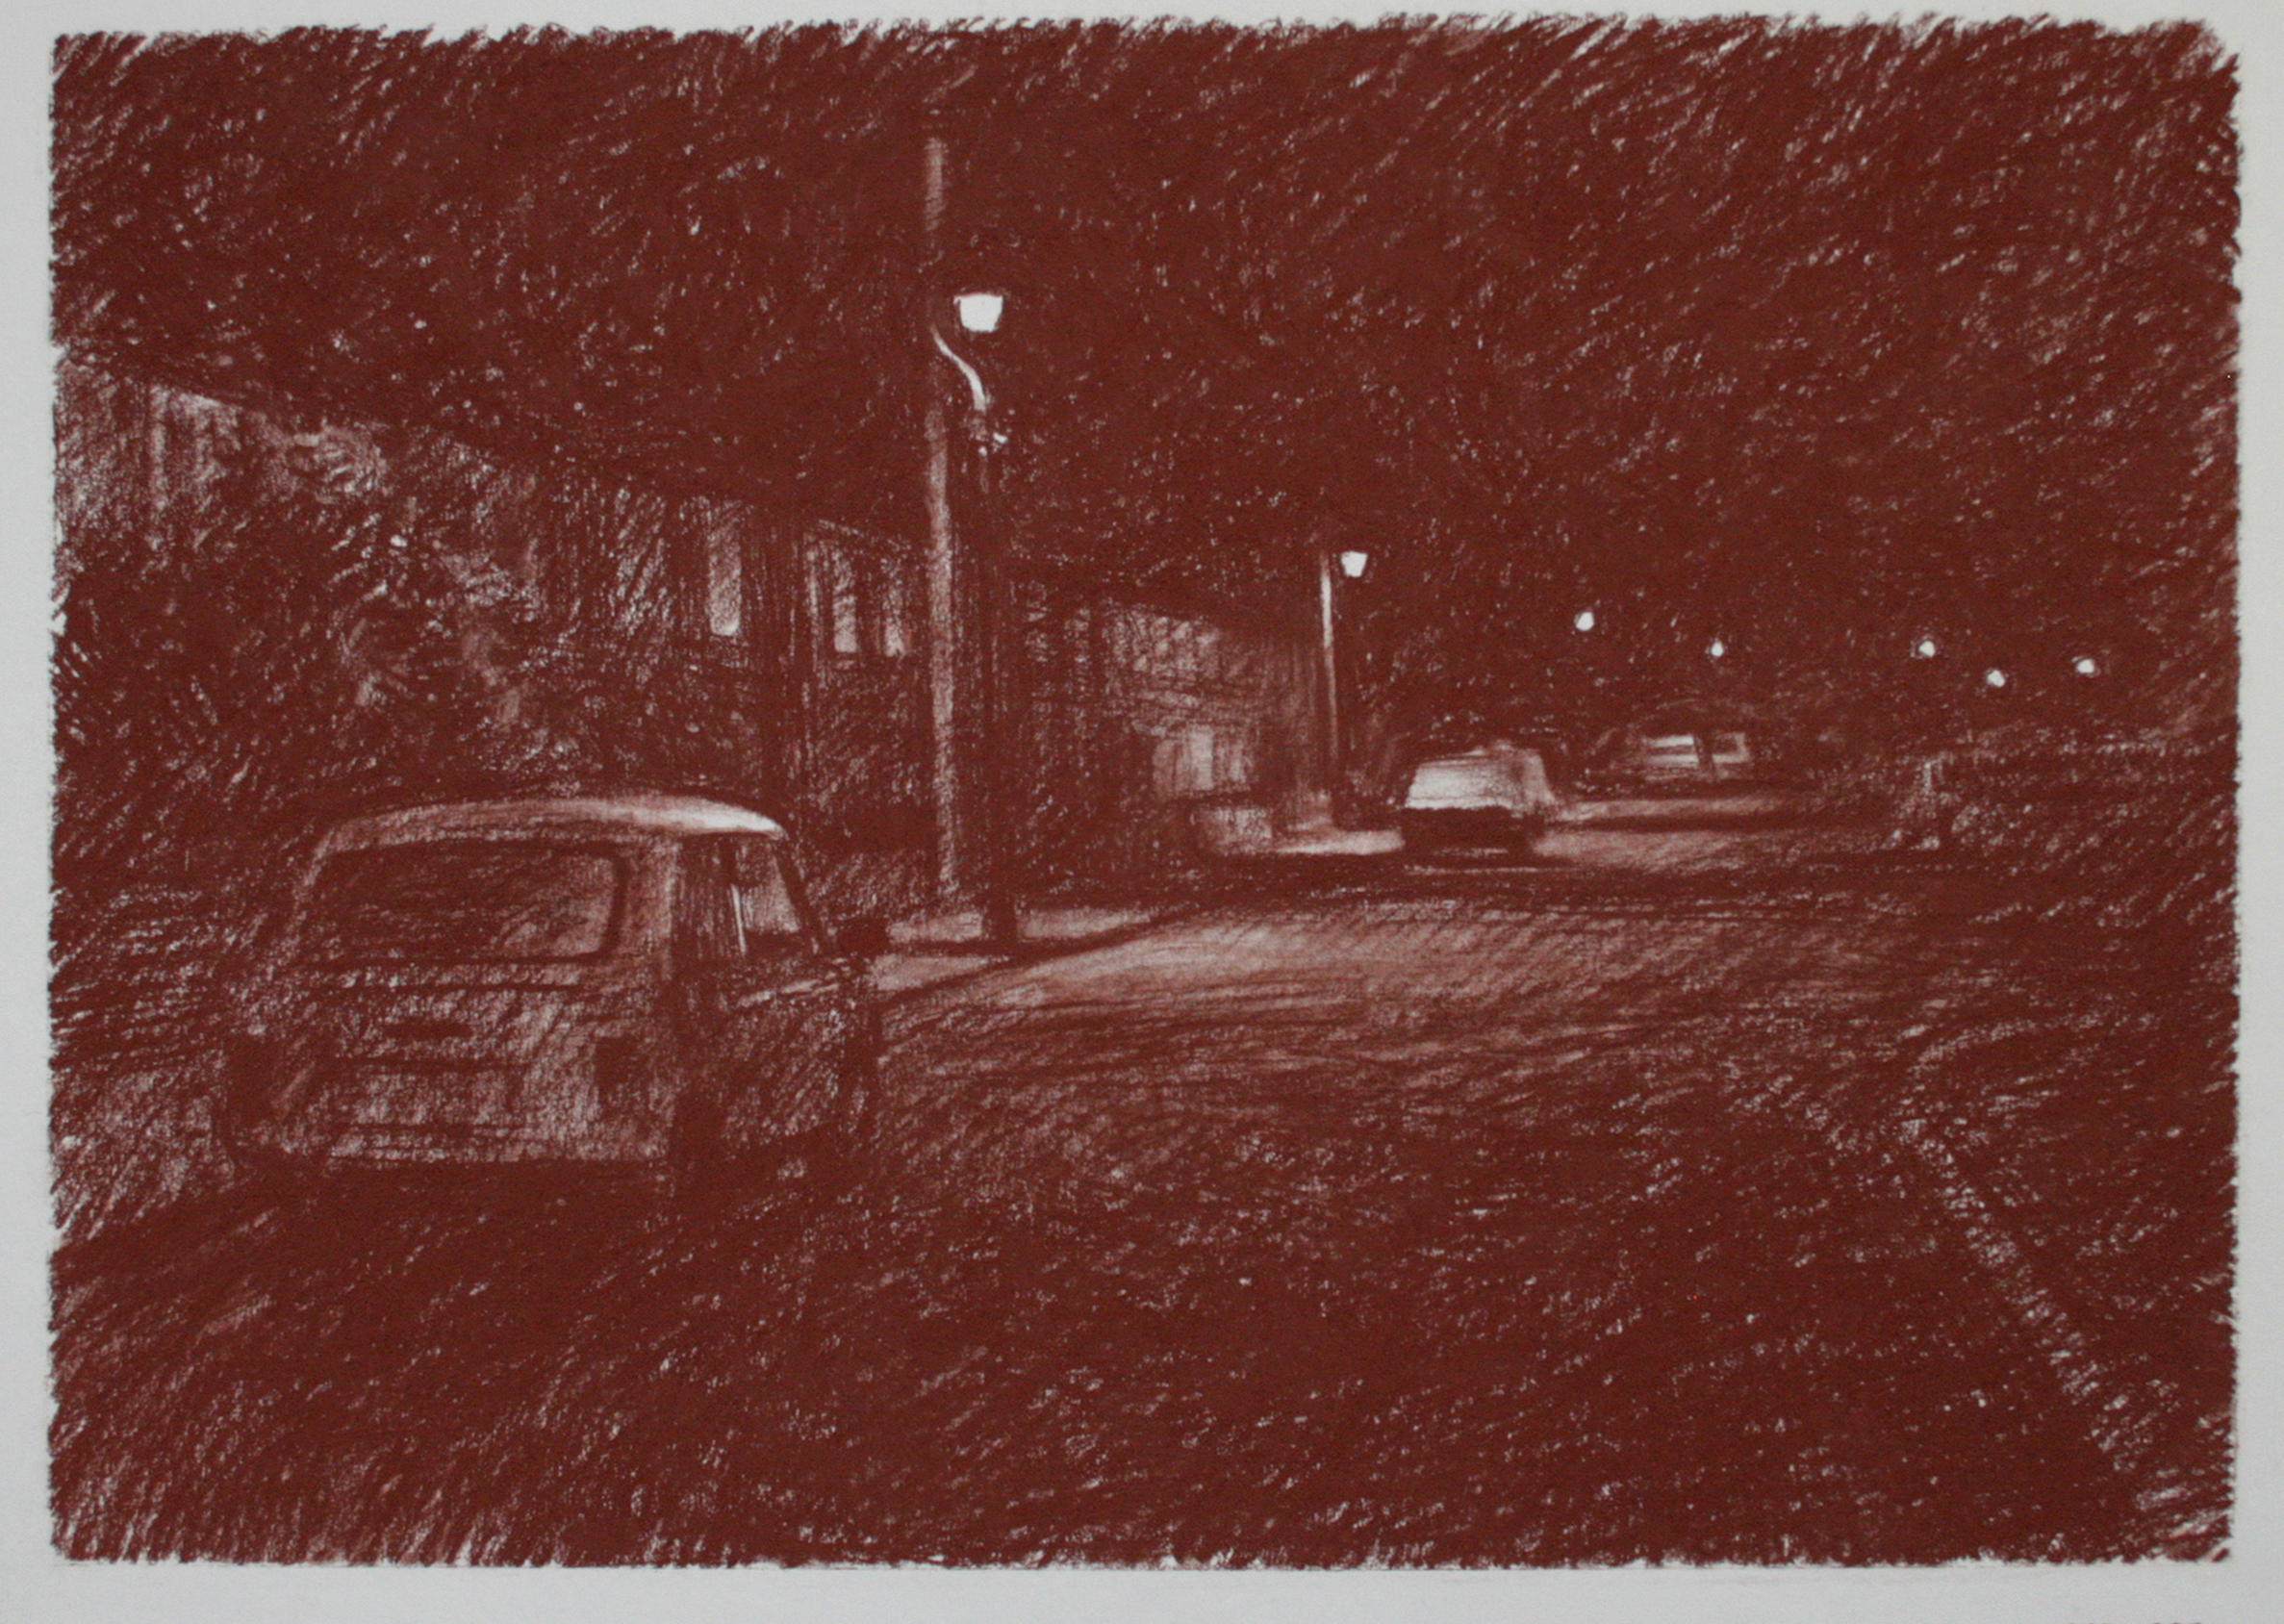 NwdA2-15  2.30am 25 September 1987. Ryder Street, Wordsley. Size A2. Conte crayon.  X